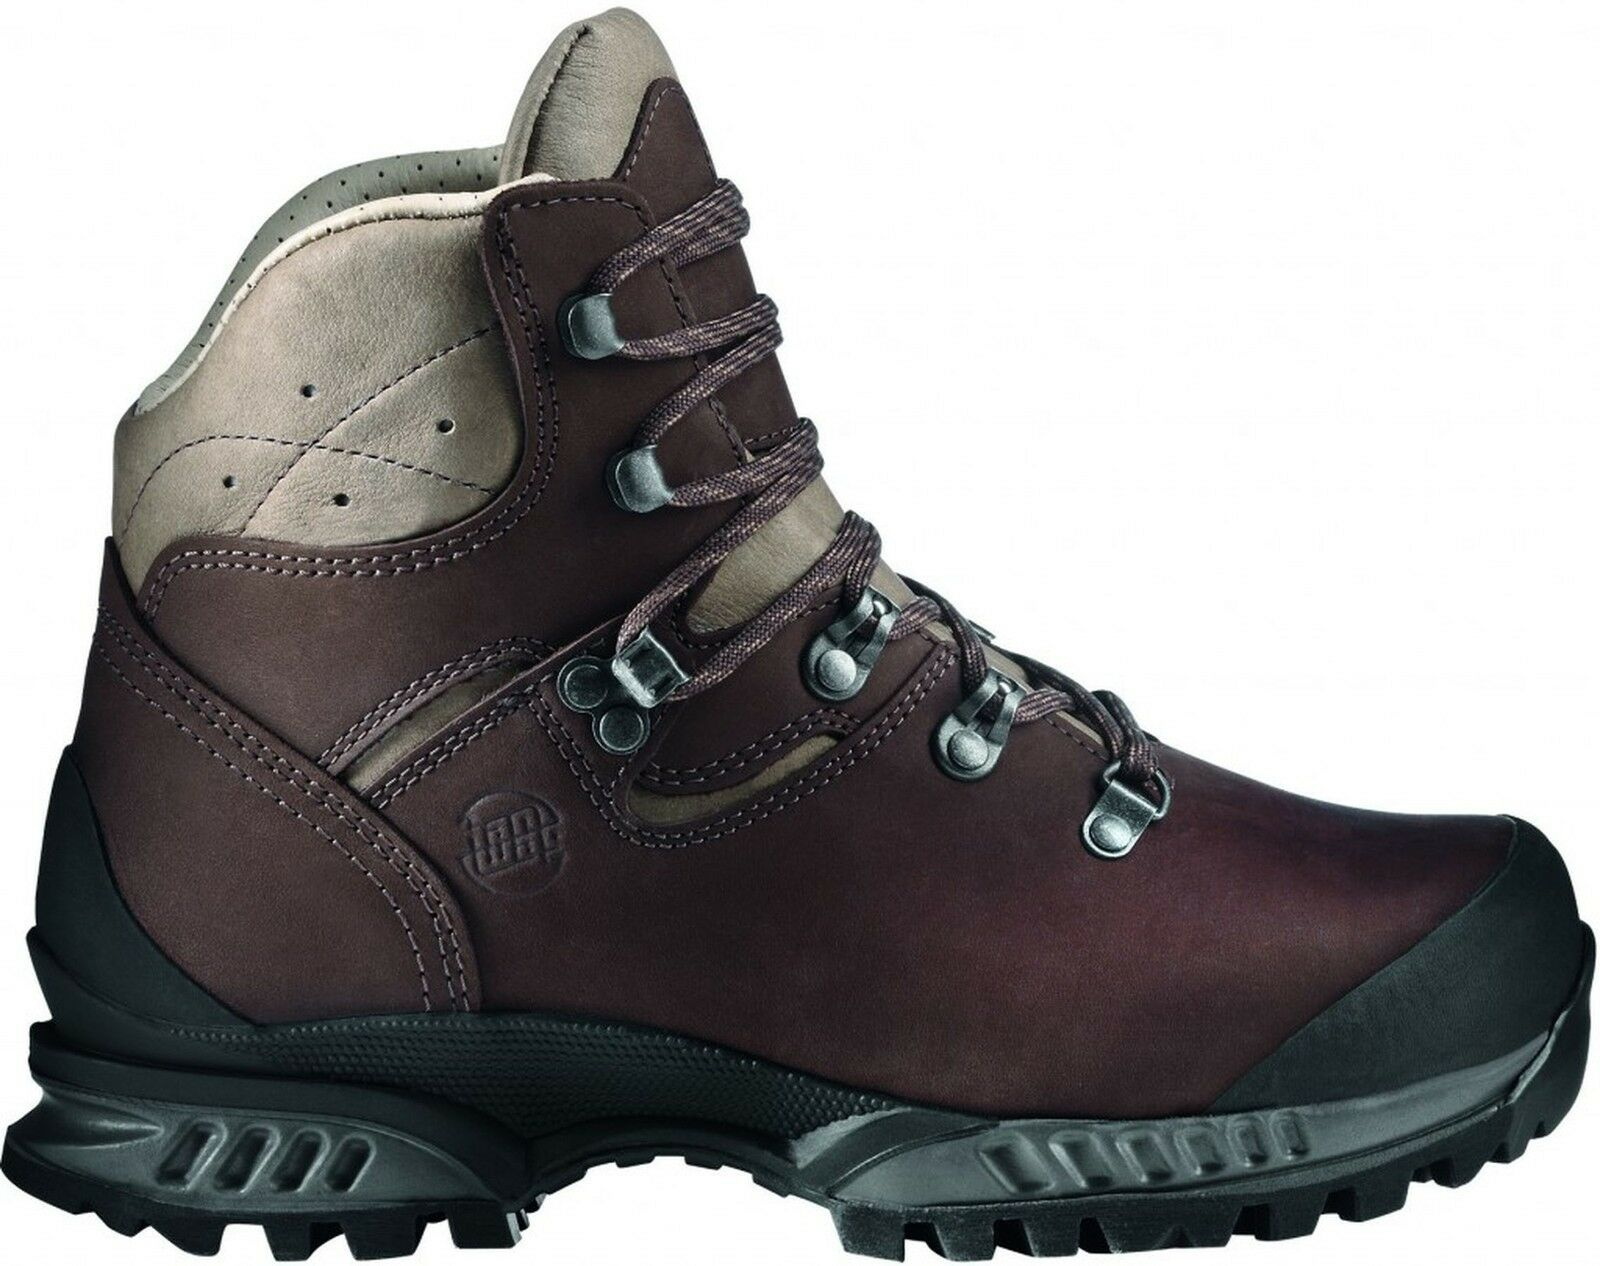 Hanwag Mountain shoes  Tatra  Bunion Men Leather Size 7,5 - 41,5 Earth  buy best